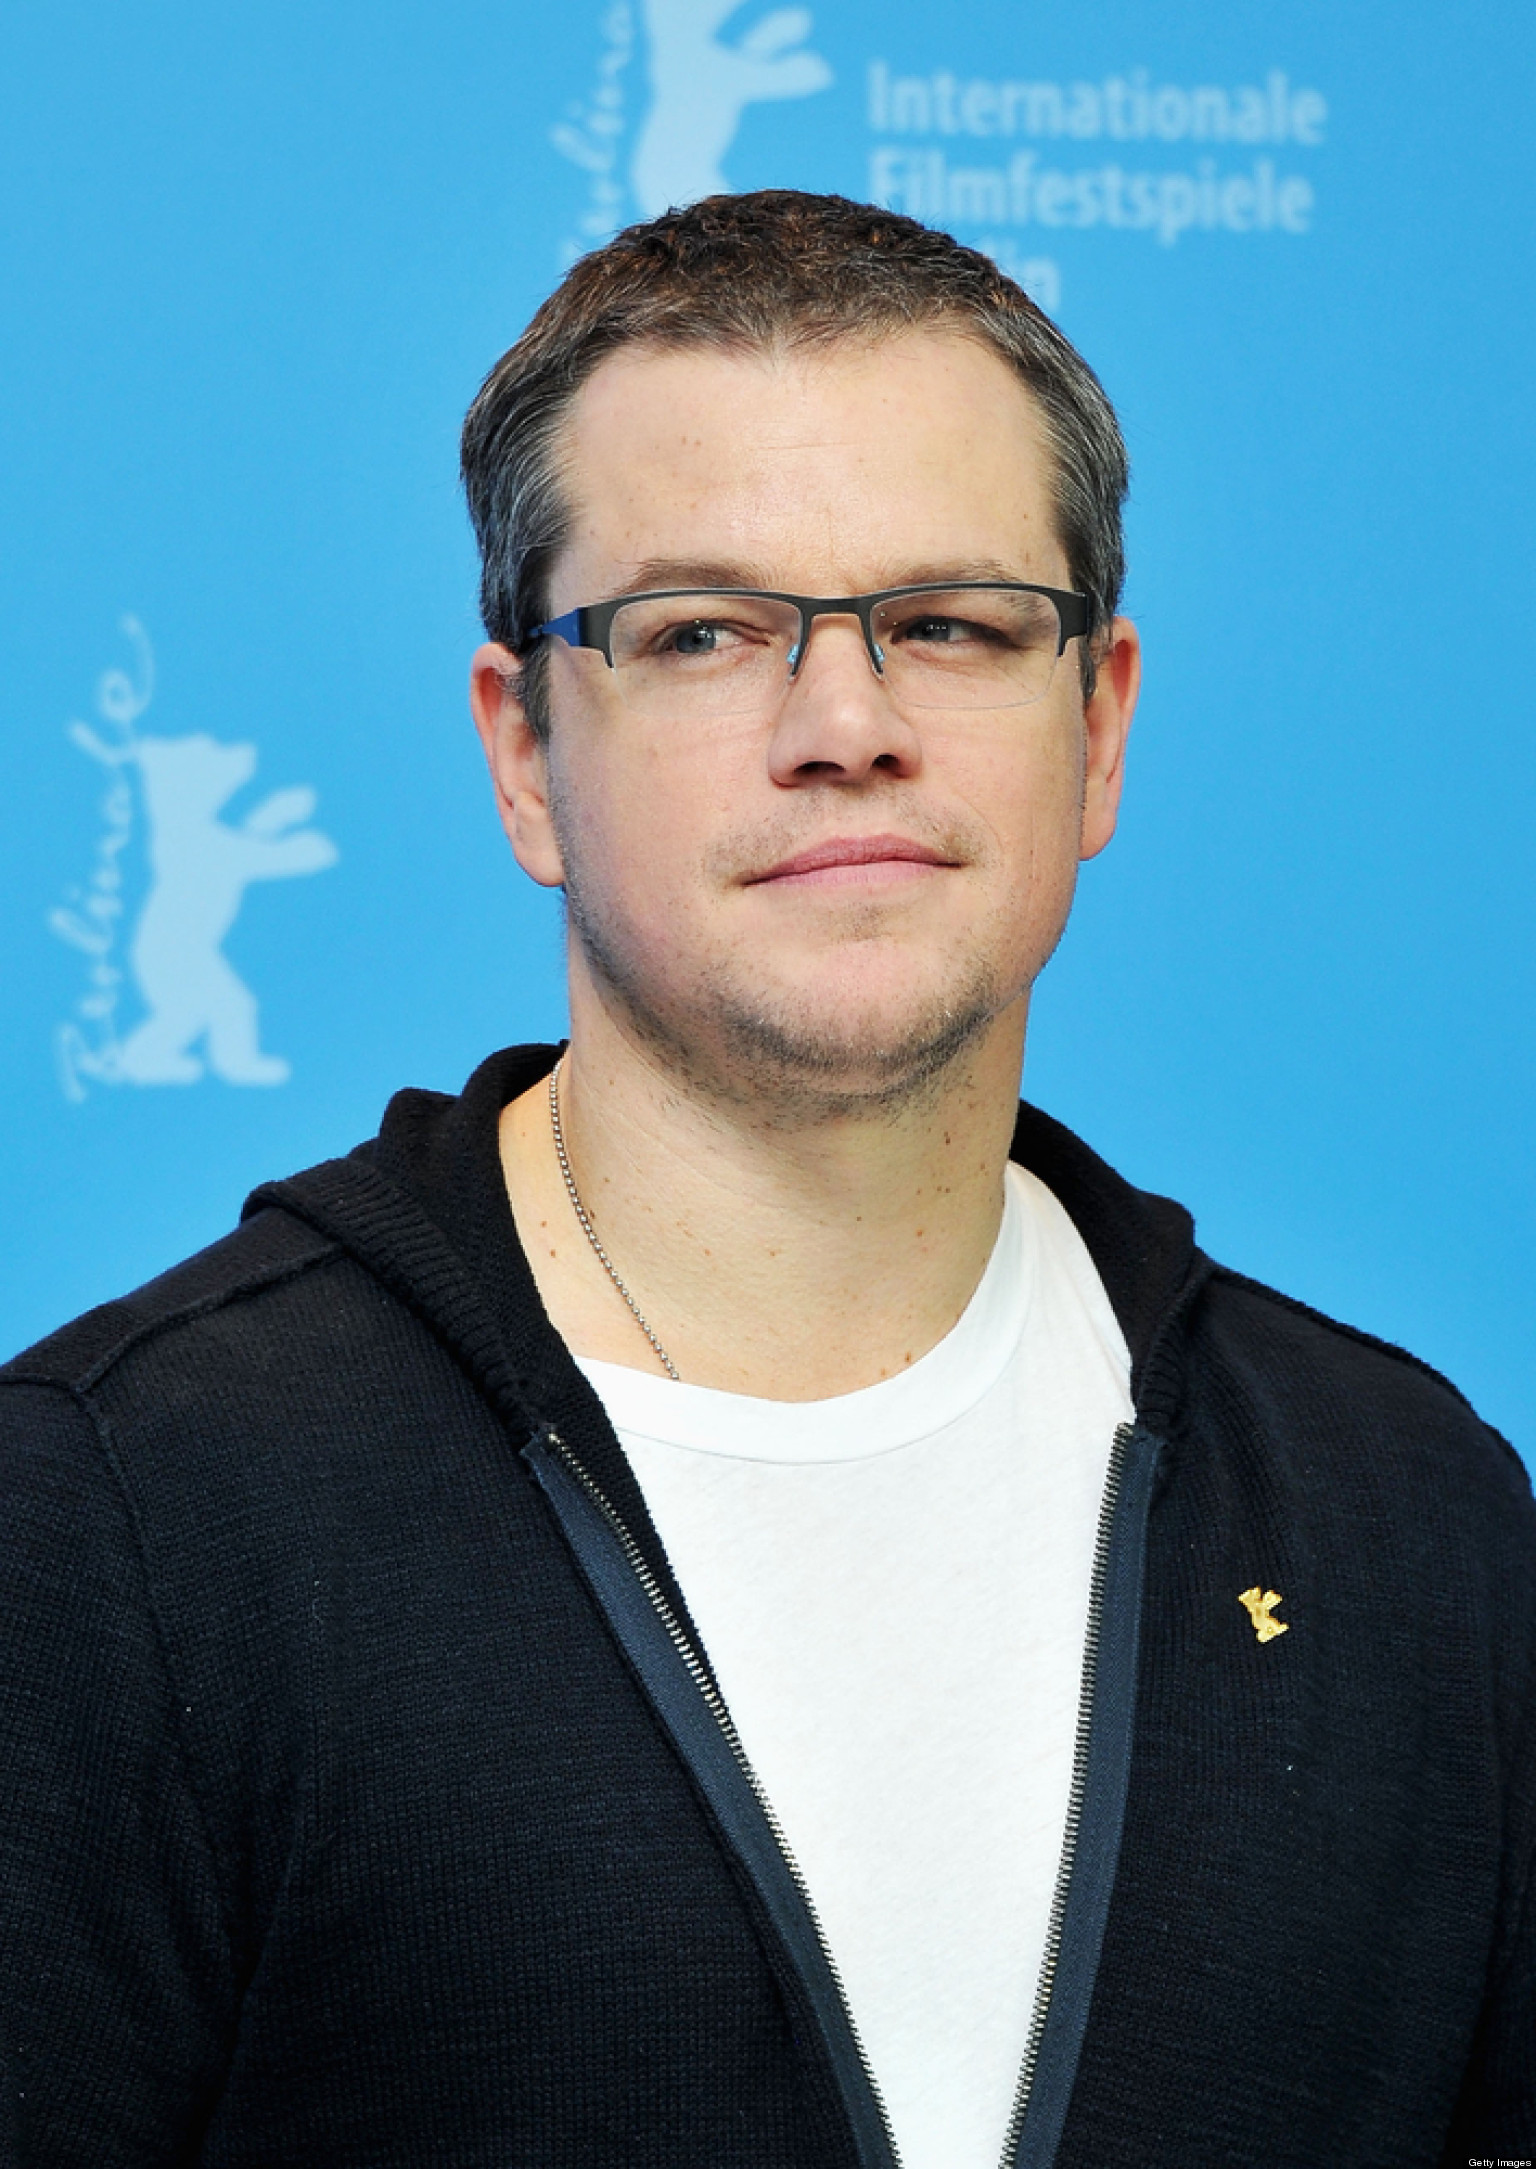 Matt Damon Shares Boston Marathon Memories Pre-Attack